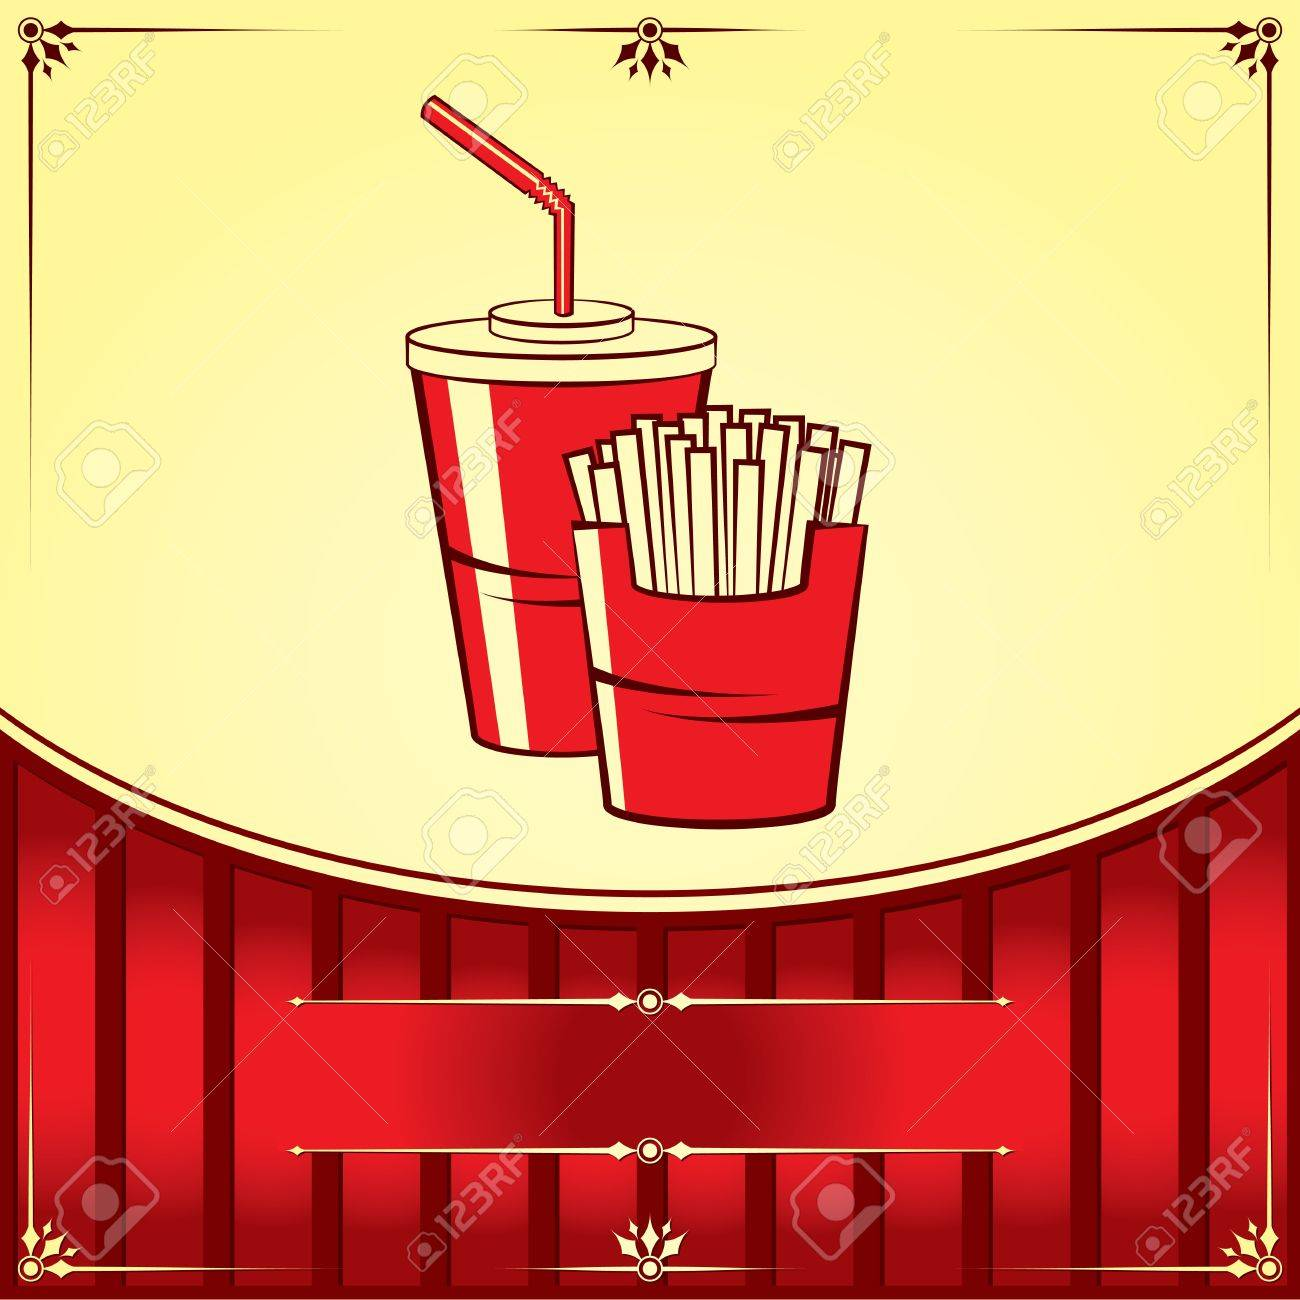 Fast food with cola and fries. Vector illustration. Stock Vector - 18237201